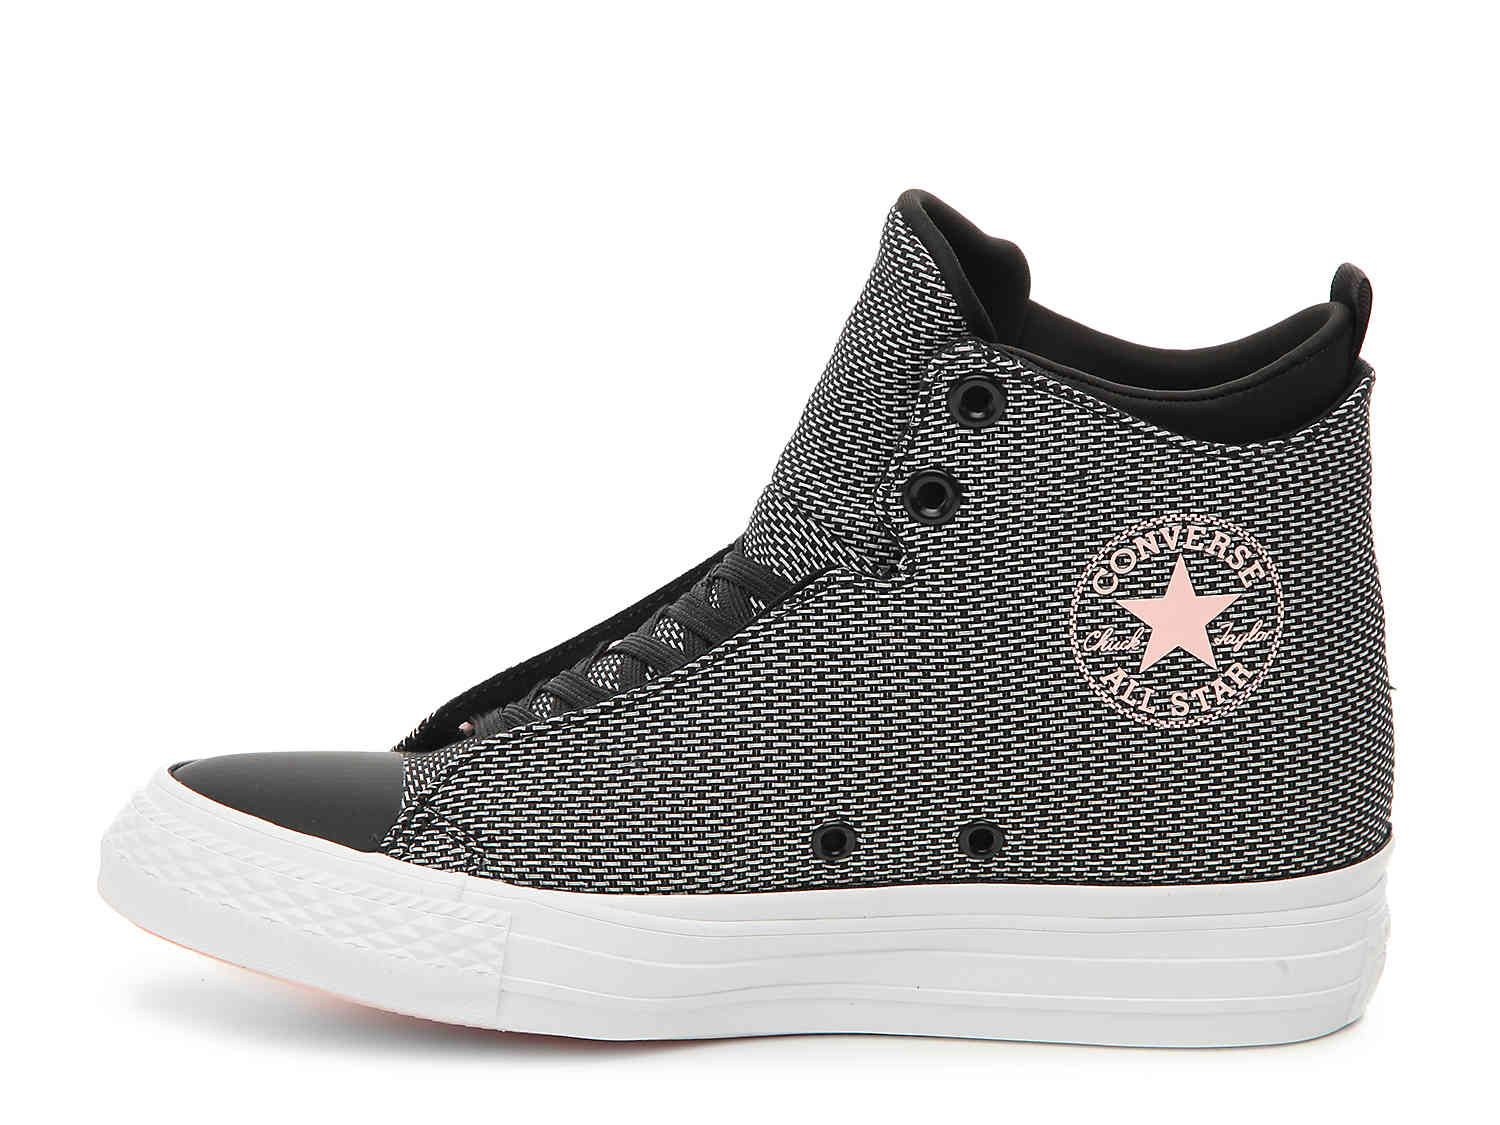 Converse Chuck Taylor All Star Selene High-Top Sneaker - Womens Women s  Shoes  6843d6c98